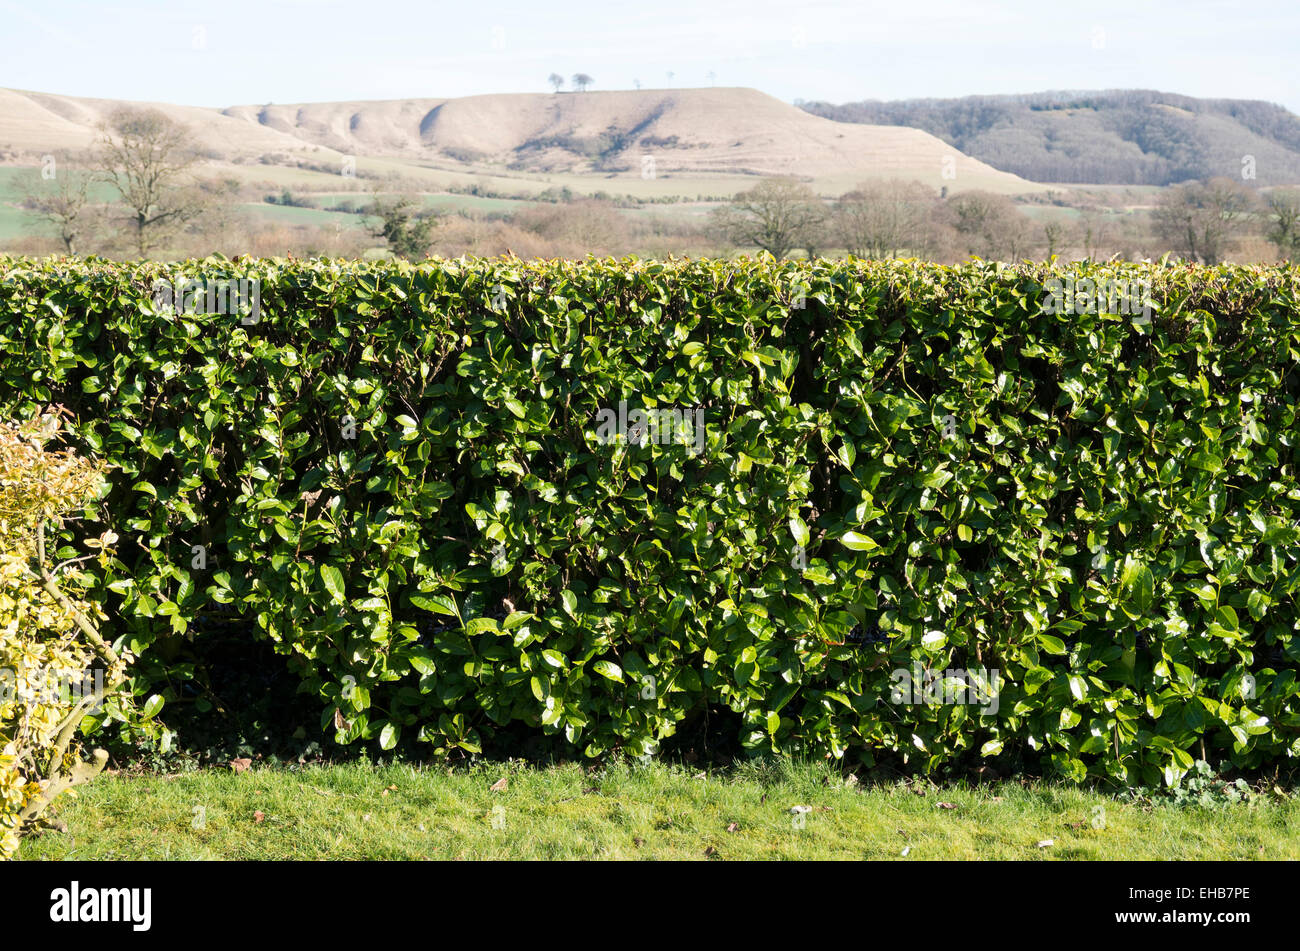 Clipped laurel hedge on garden boundary with rural view beyond - Stock Image